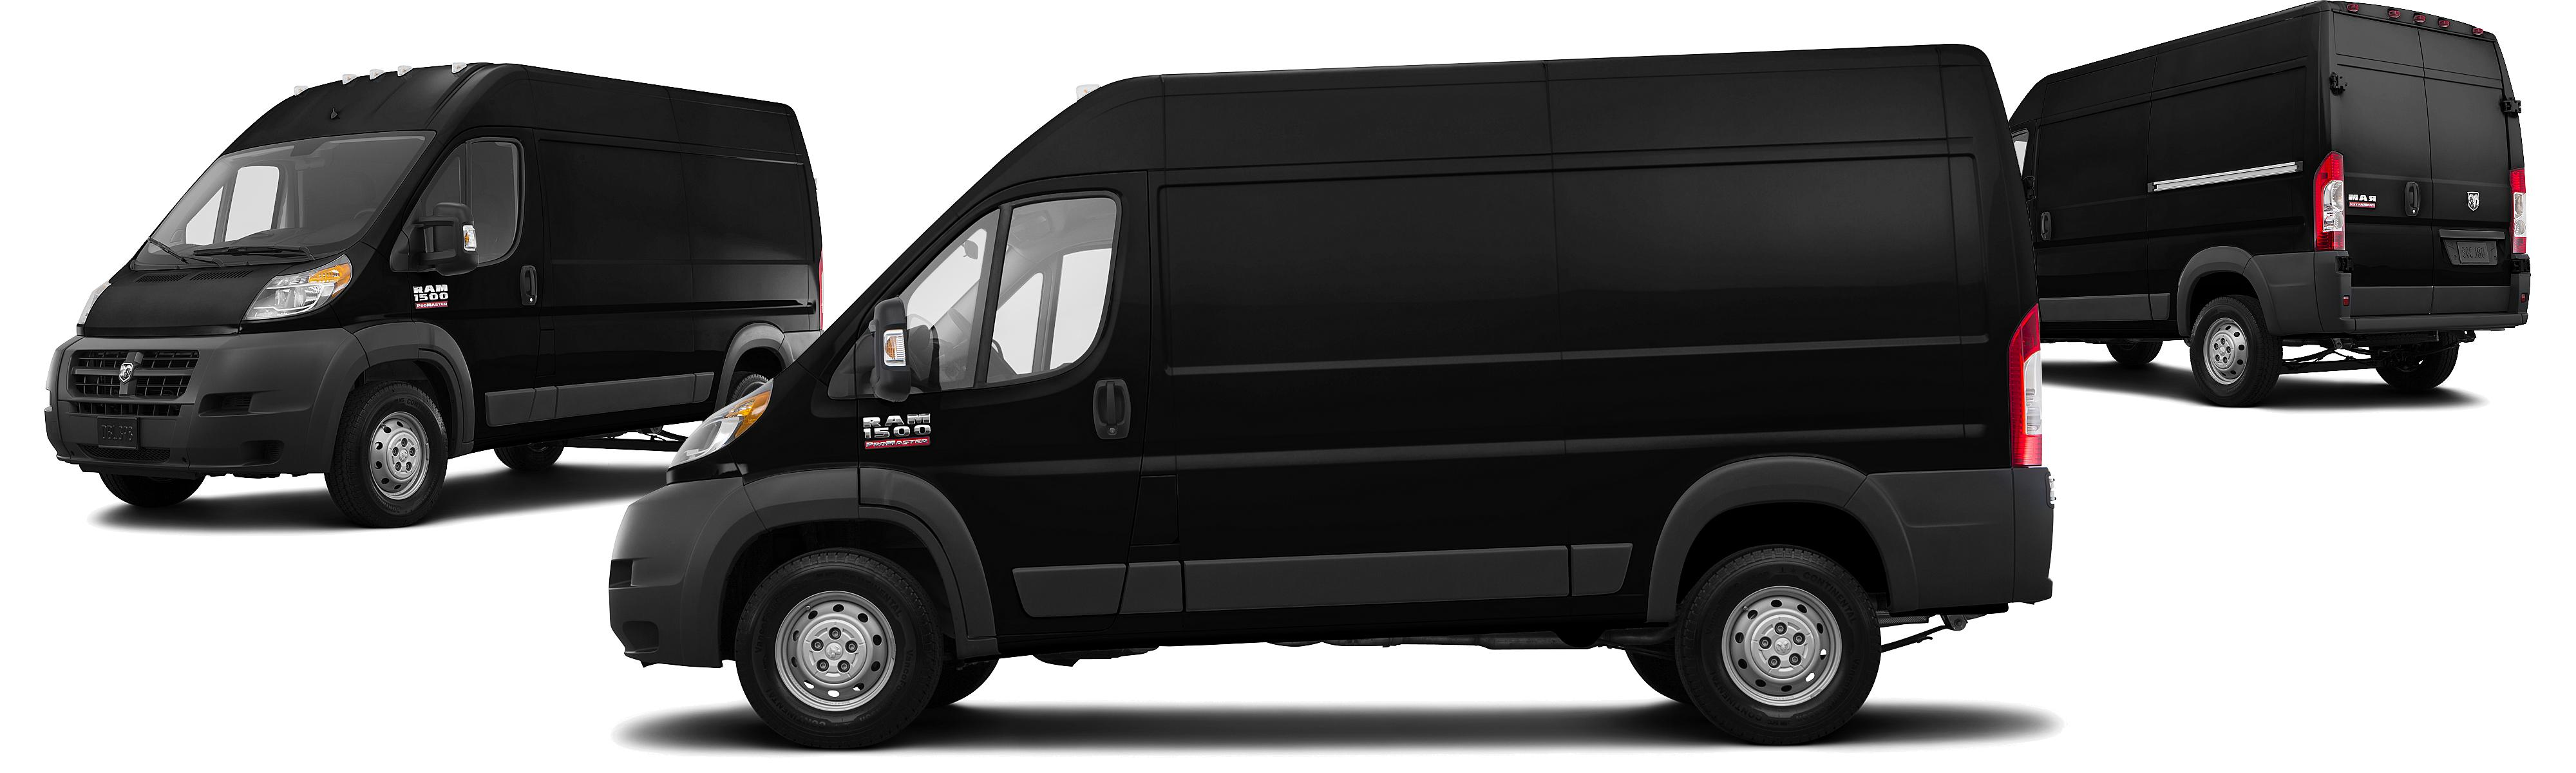 24bb19f7ce 2017 Ram ProMaster Cargo 1500 136 WB 3dr High Roof Cargo Van - Research -  GrooveCar